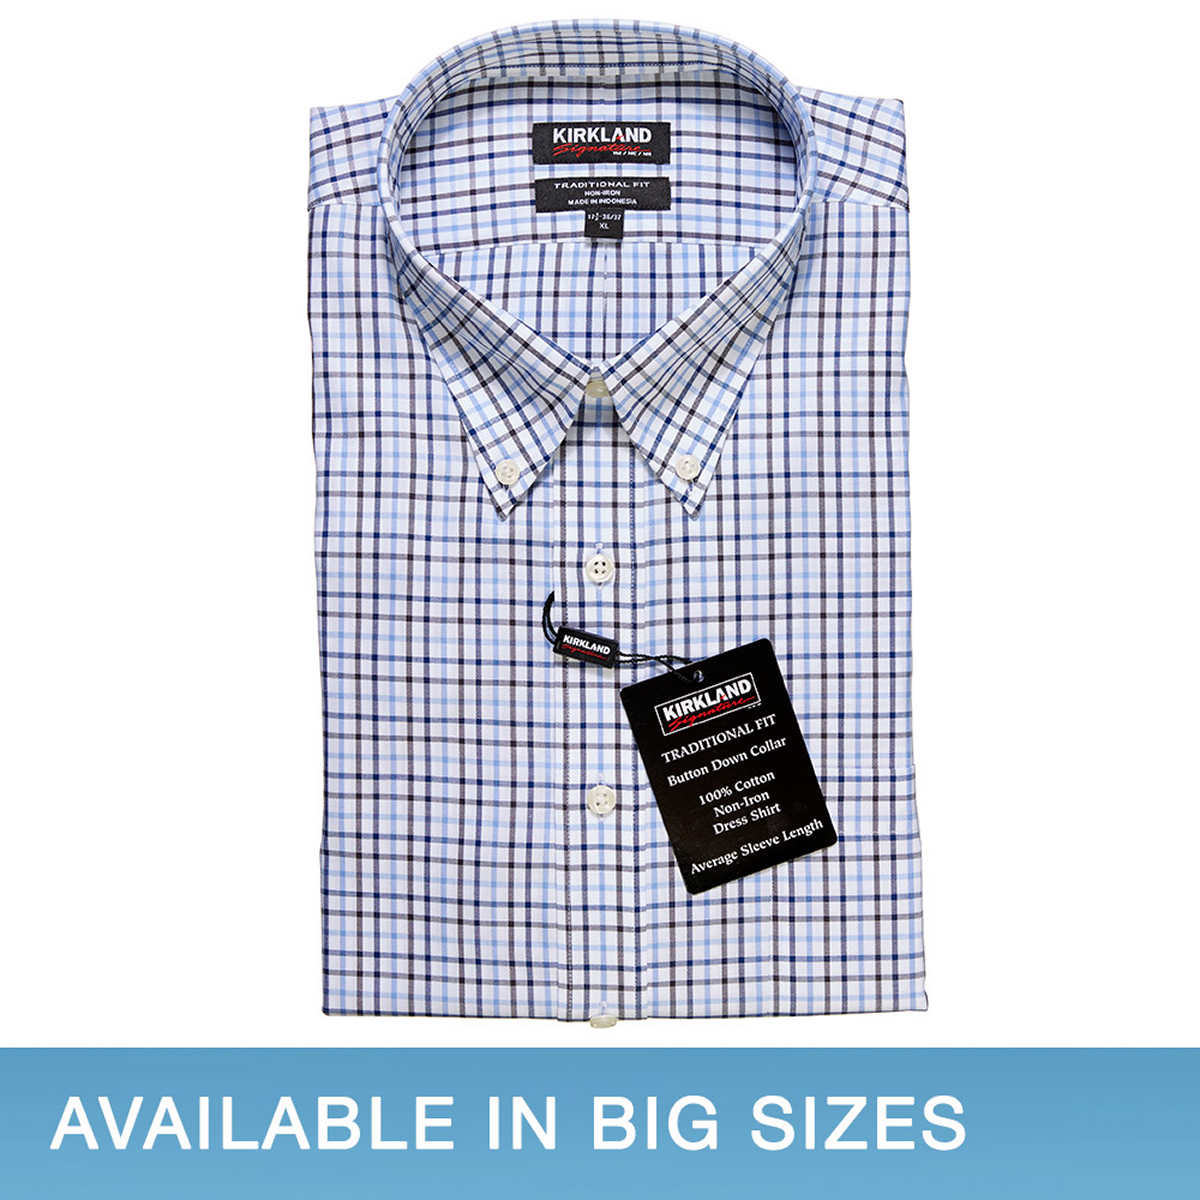 Tommy Hilffiger (Costco) blue 100% cotton shirt. Tommy